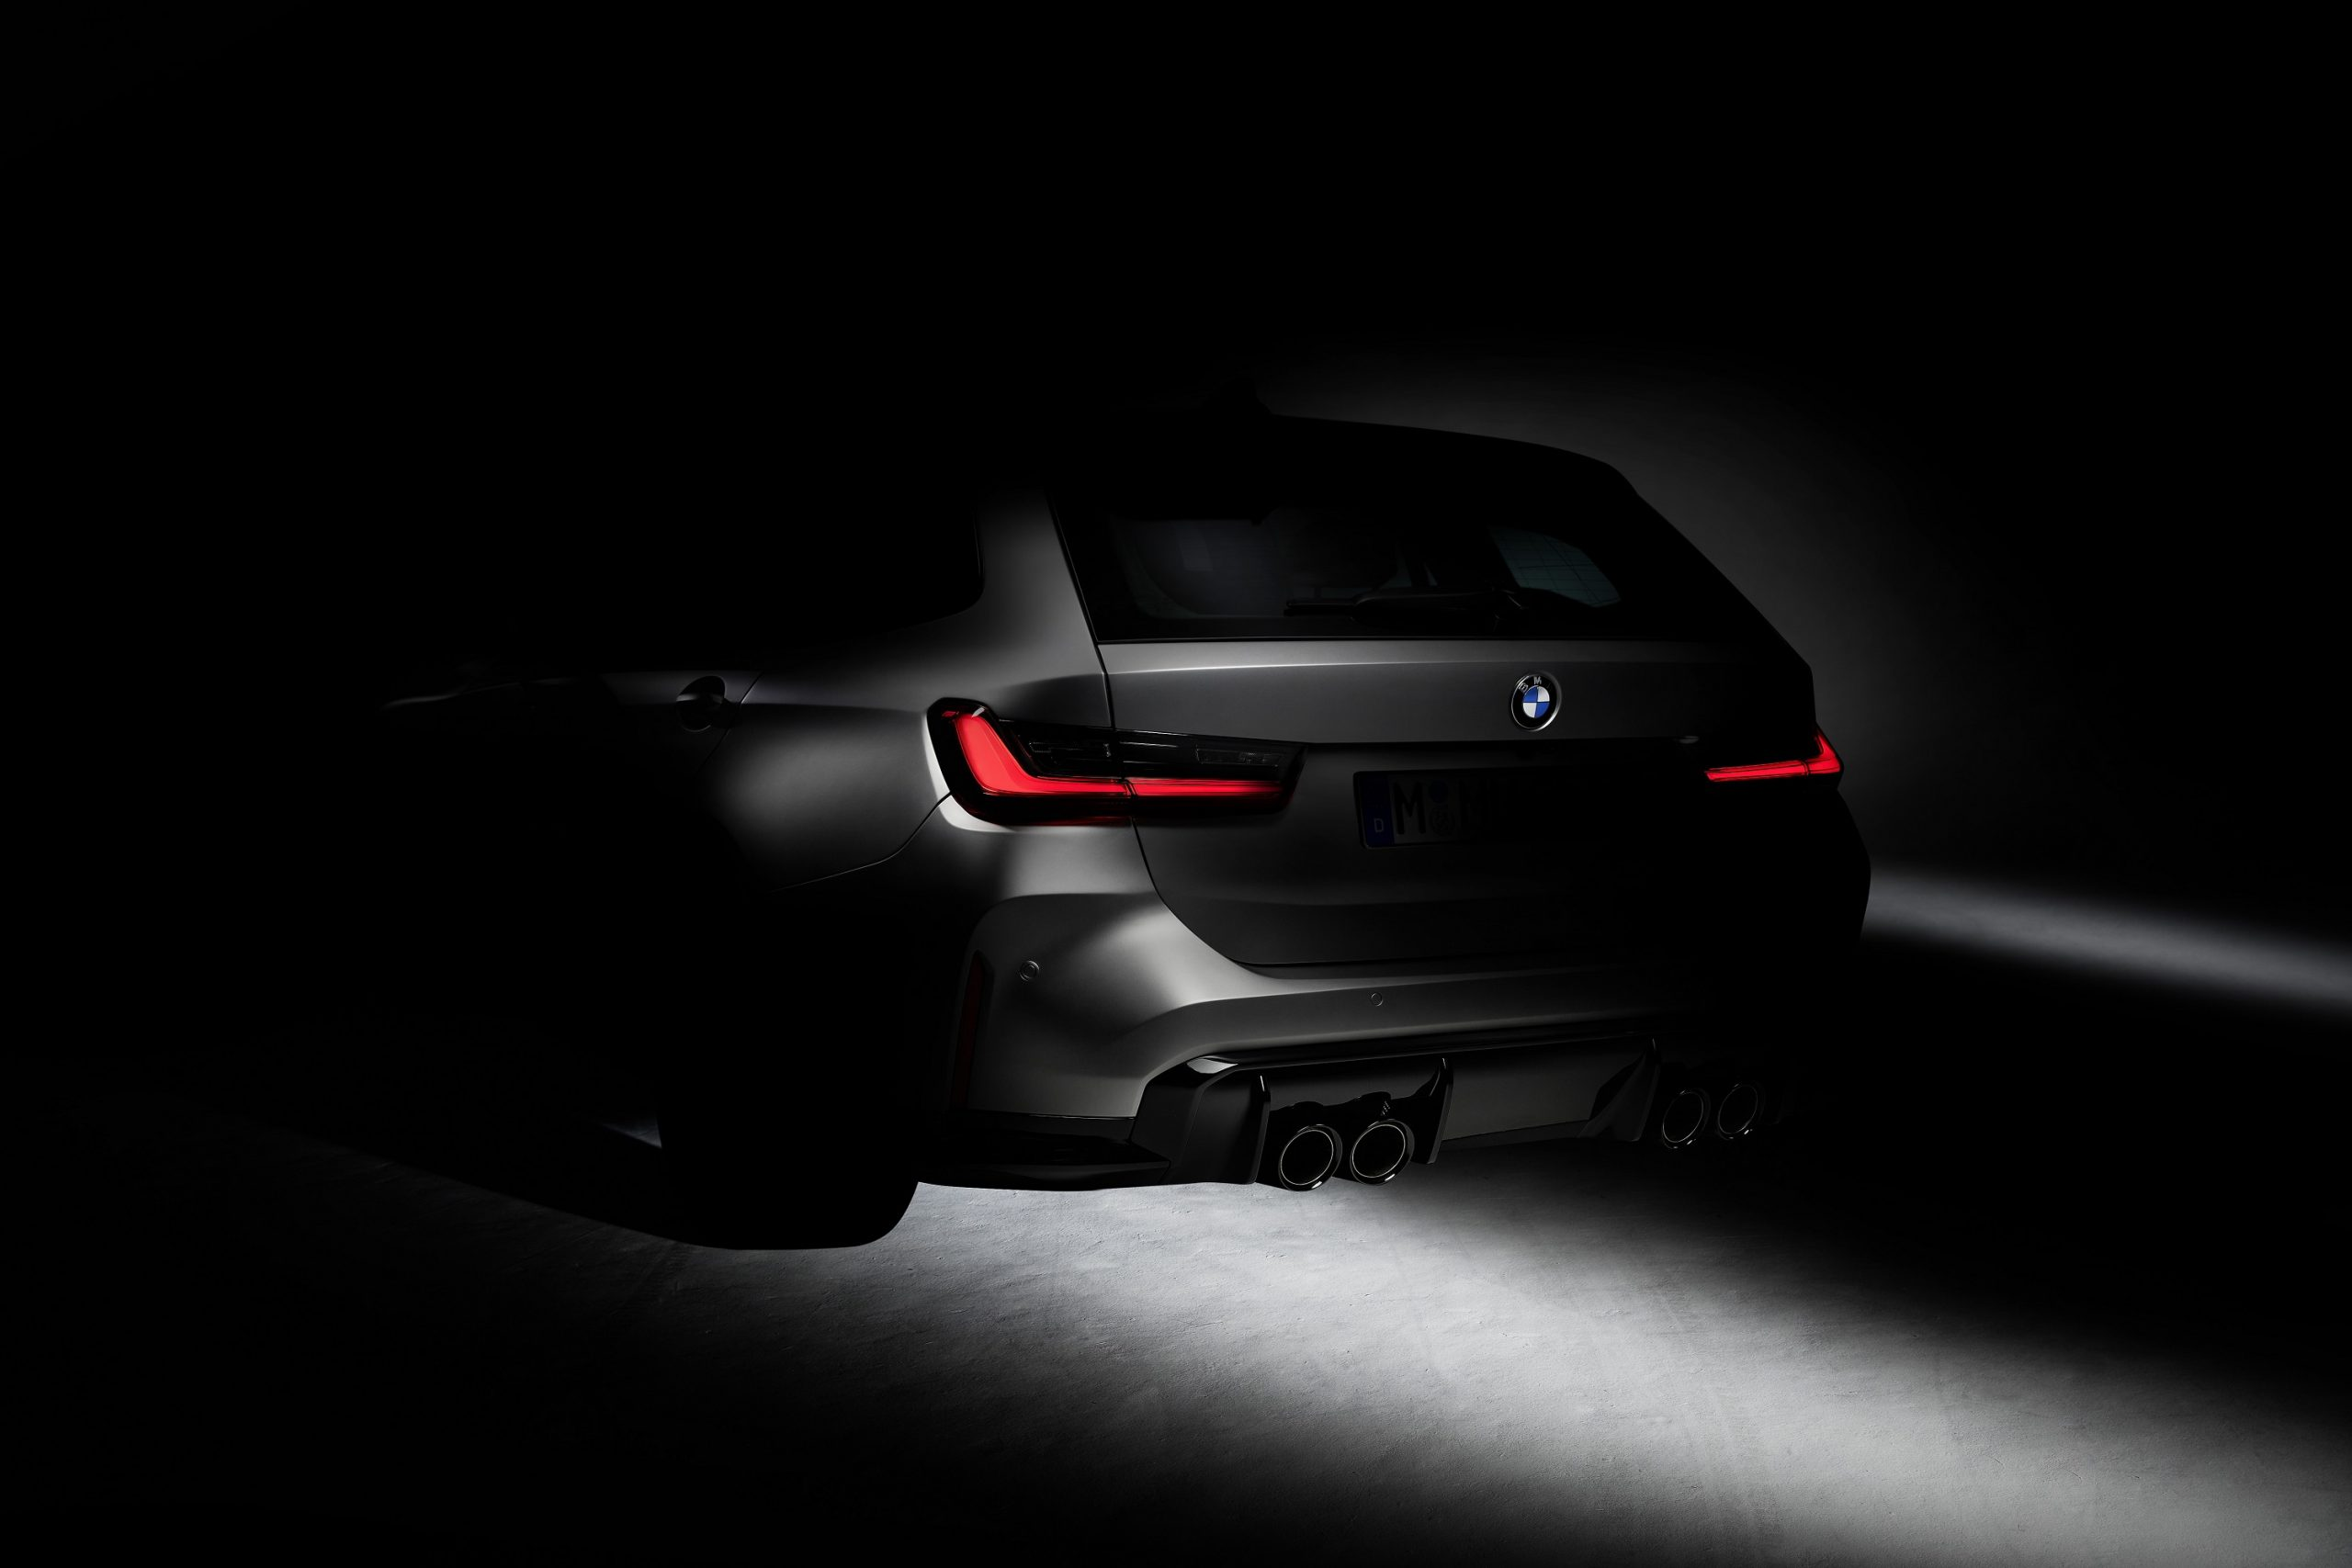 The silhouette of the 2022 BMW M3 touring shot from the rear 3/4 angle